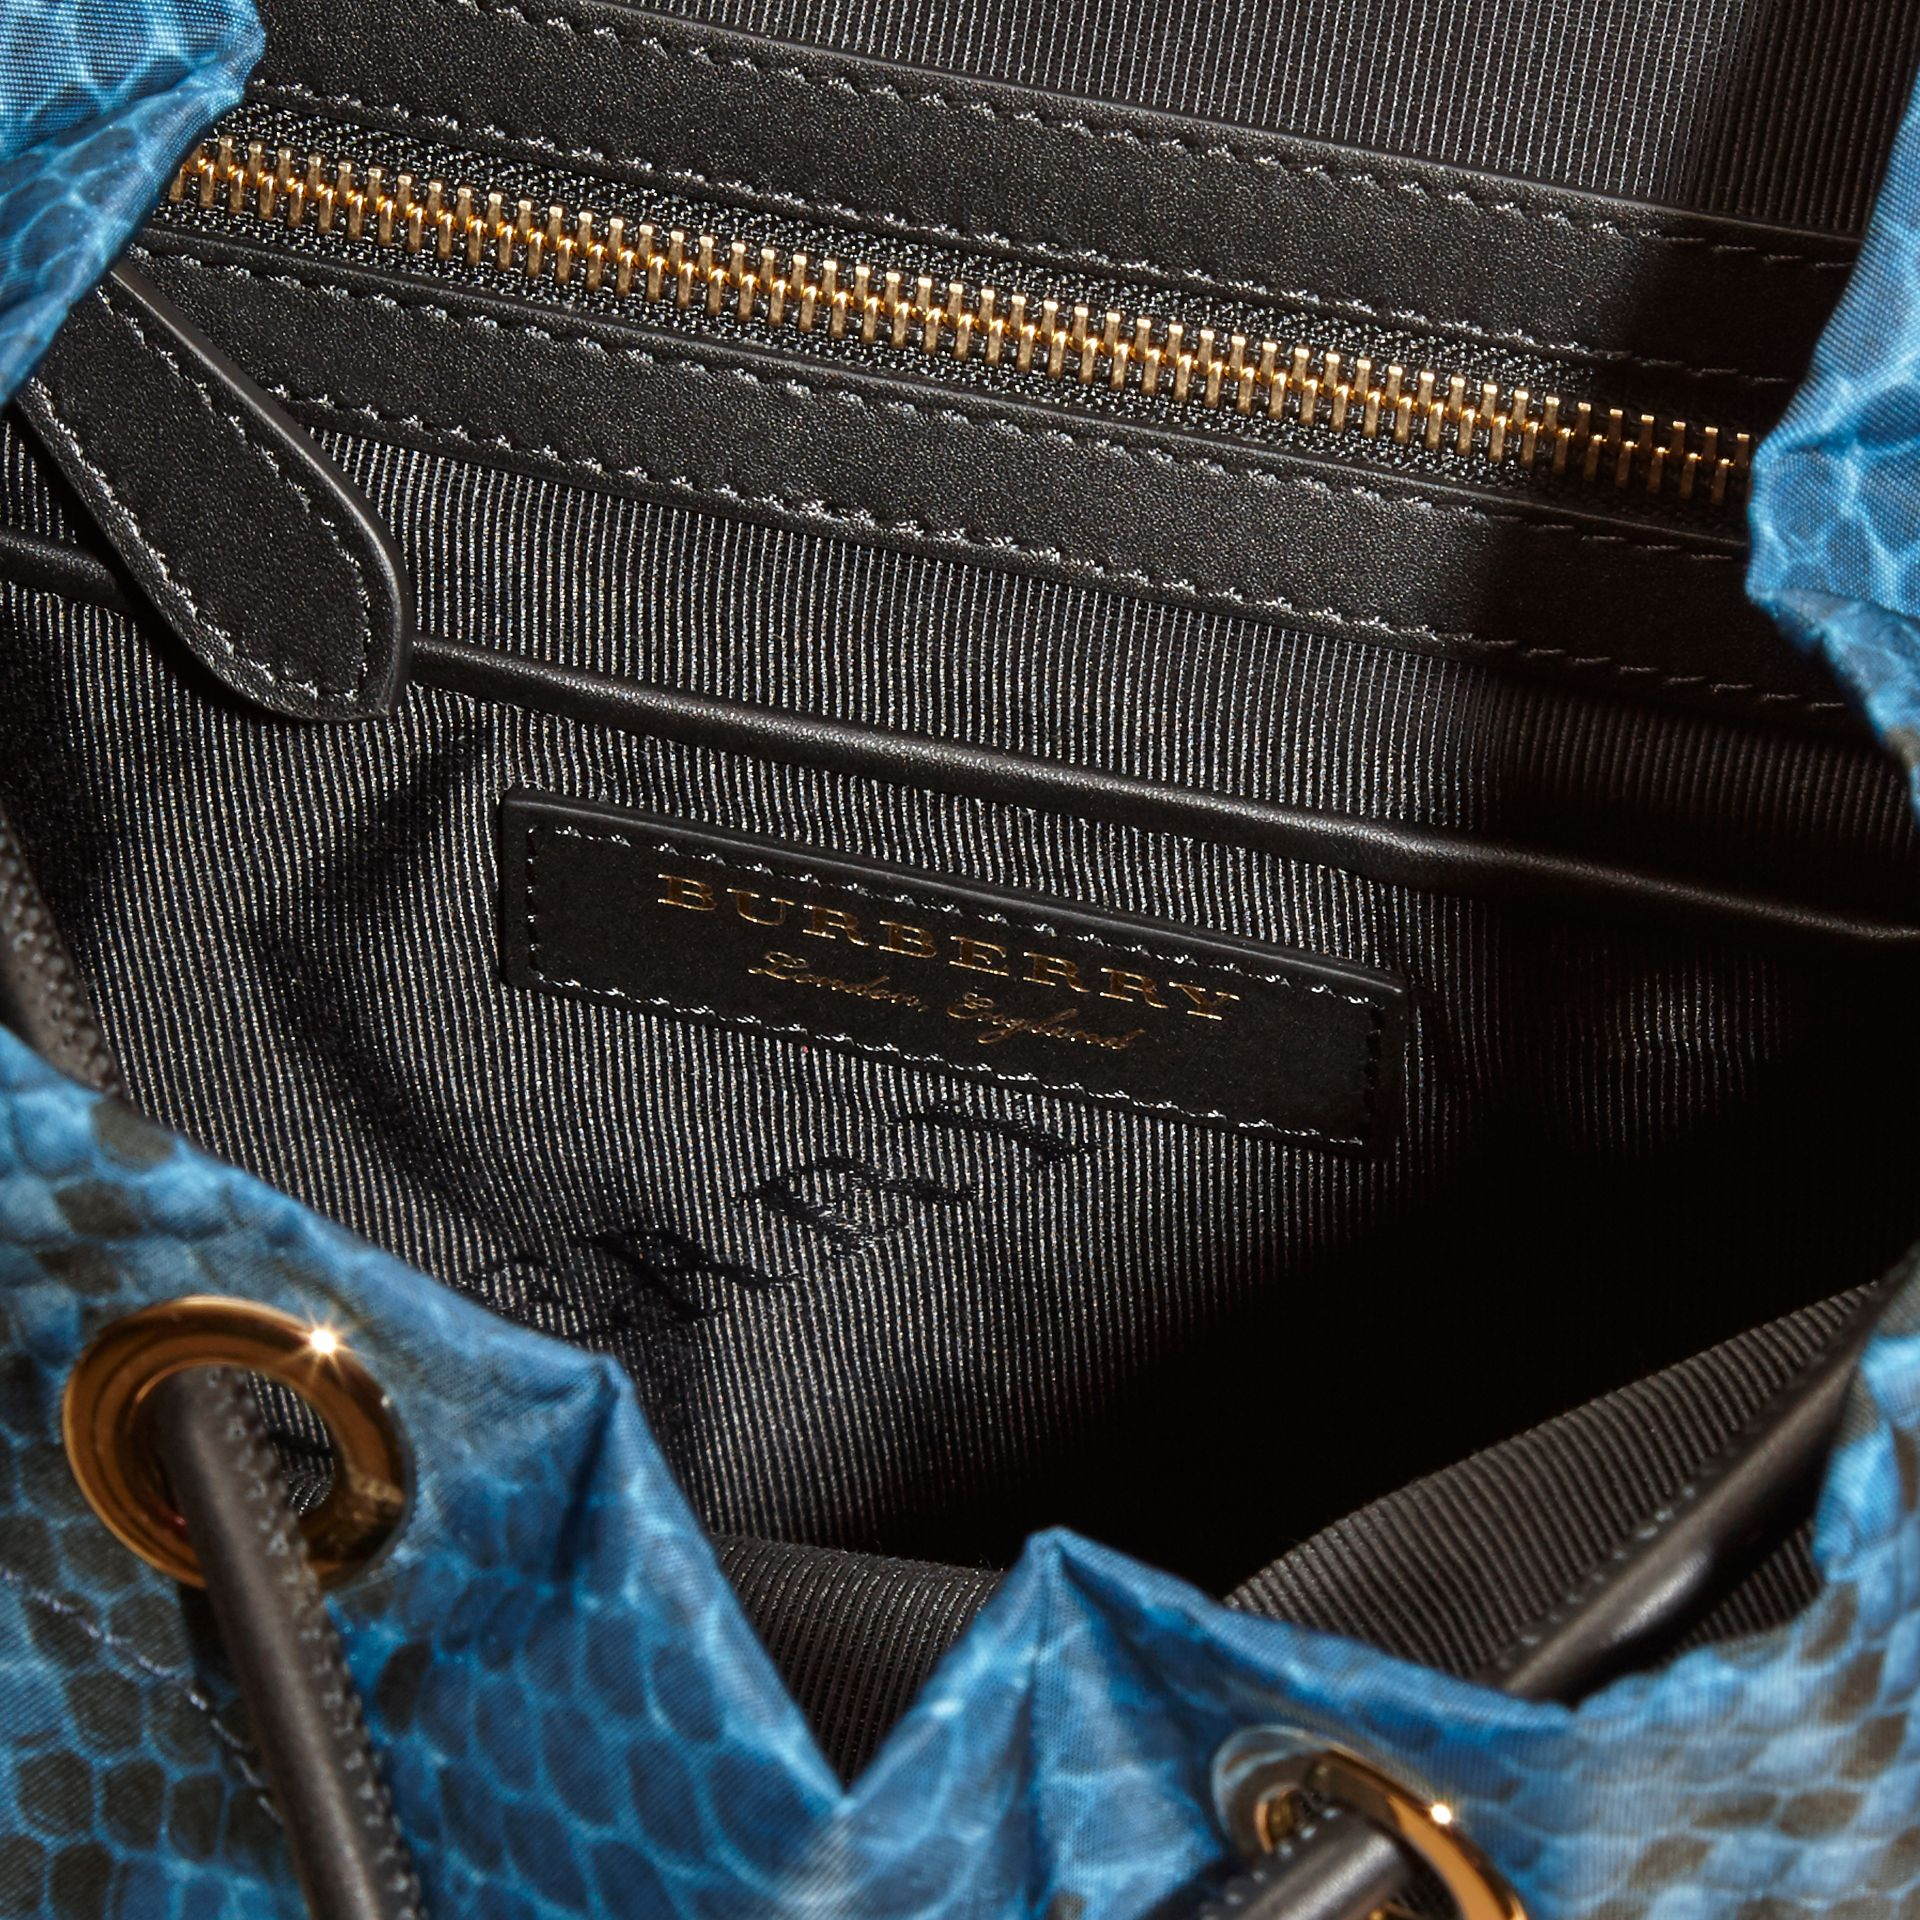 Bleu Sac The Rucksack medium en nylon à imprimé python et cuir Bleu - photo de la galerie 5